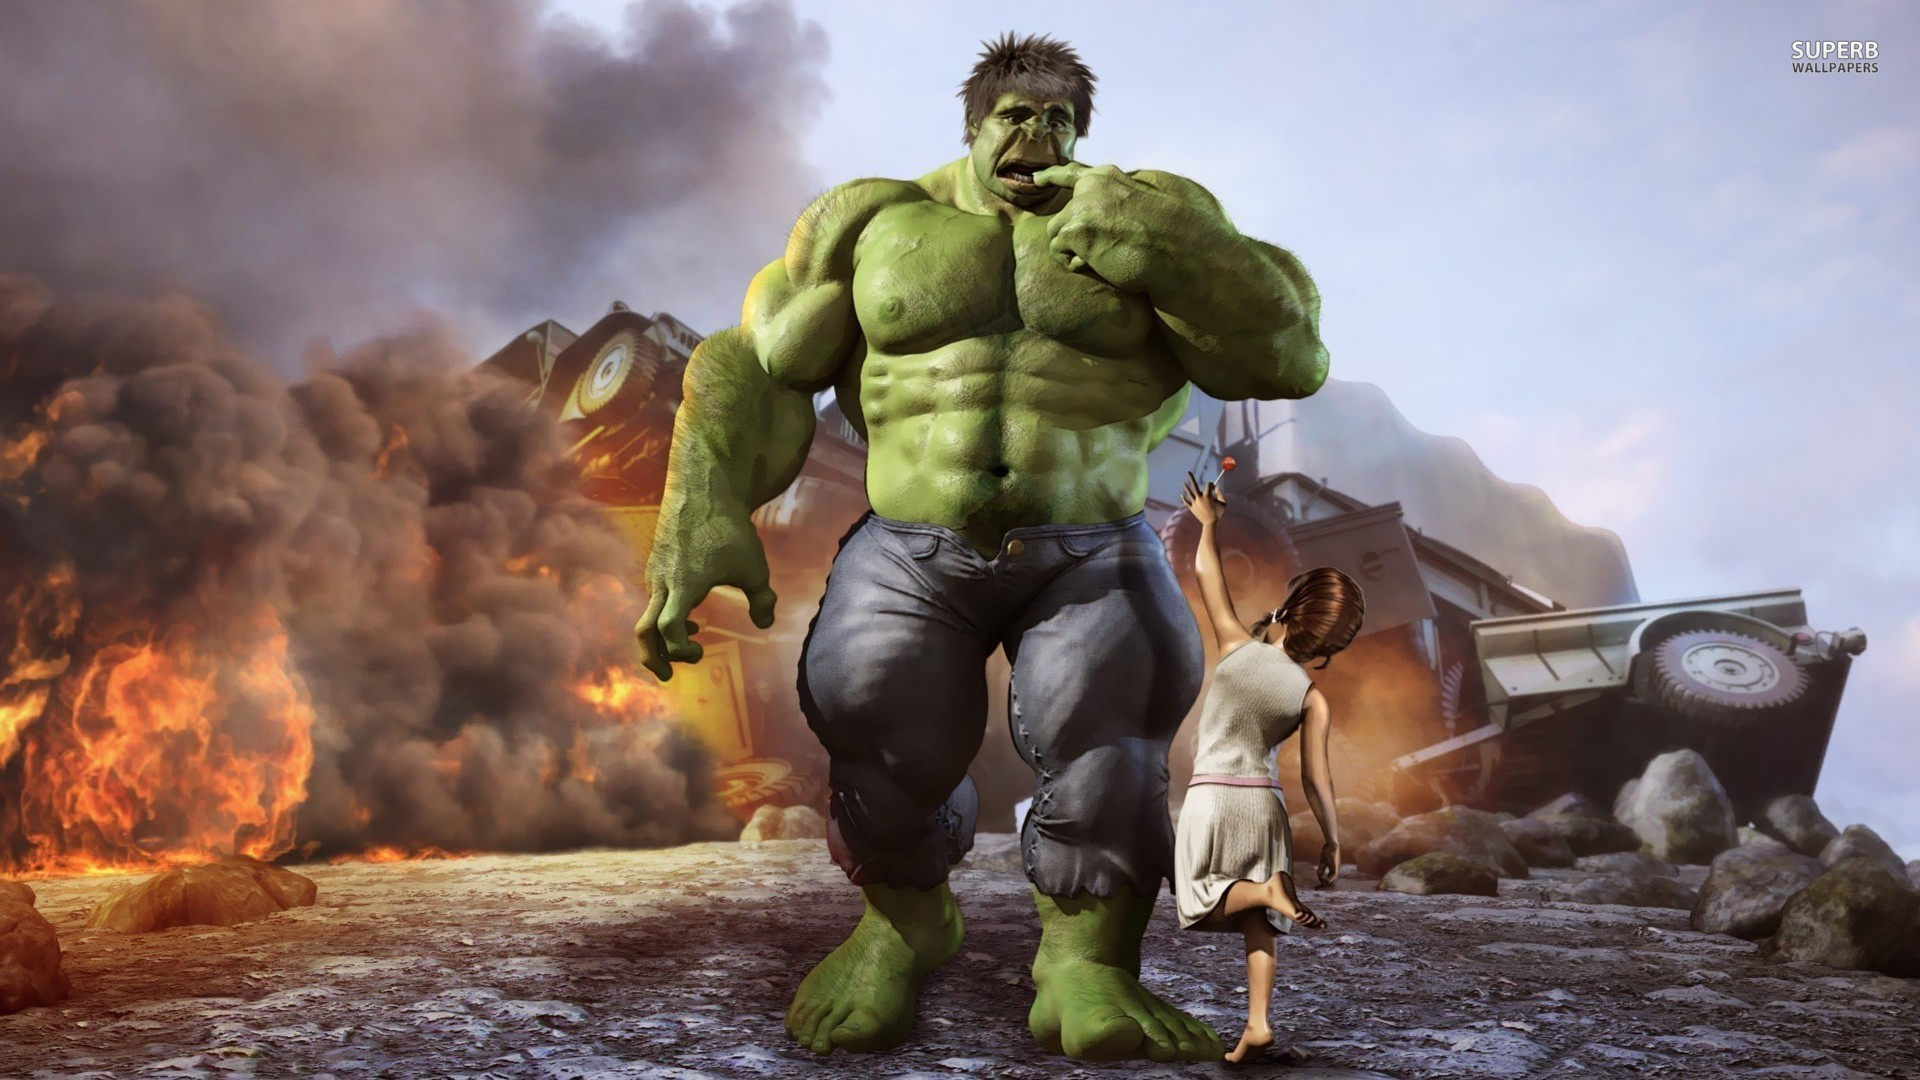 Wallpaper 4k Samsung Galaxy S8 Girls Incredible Hulk Wallpaper 2018 58 Images